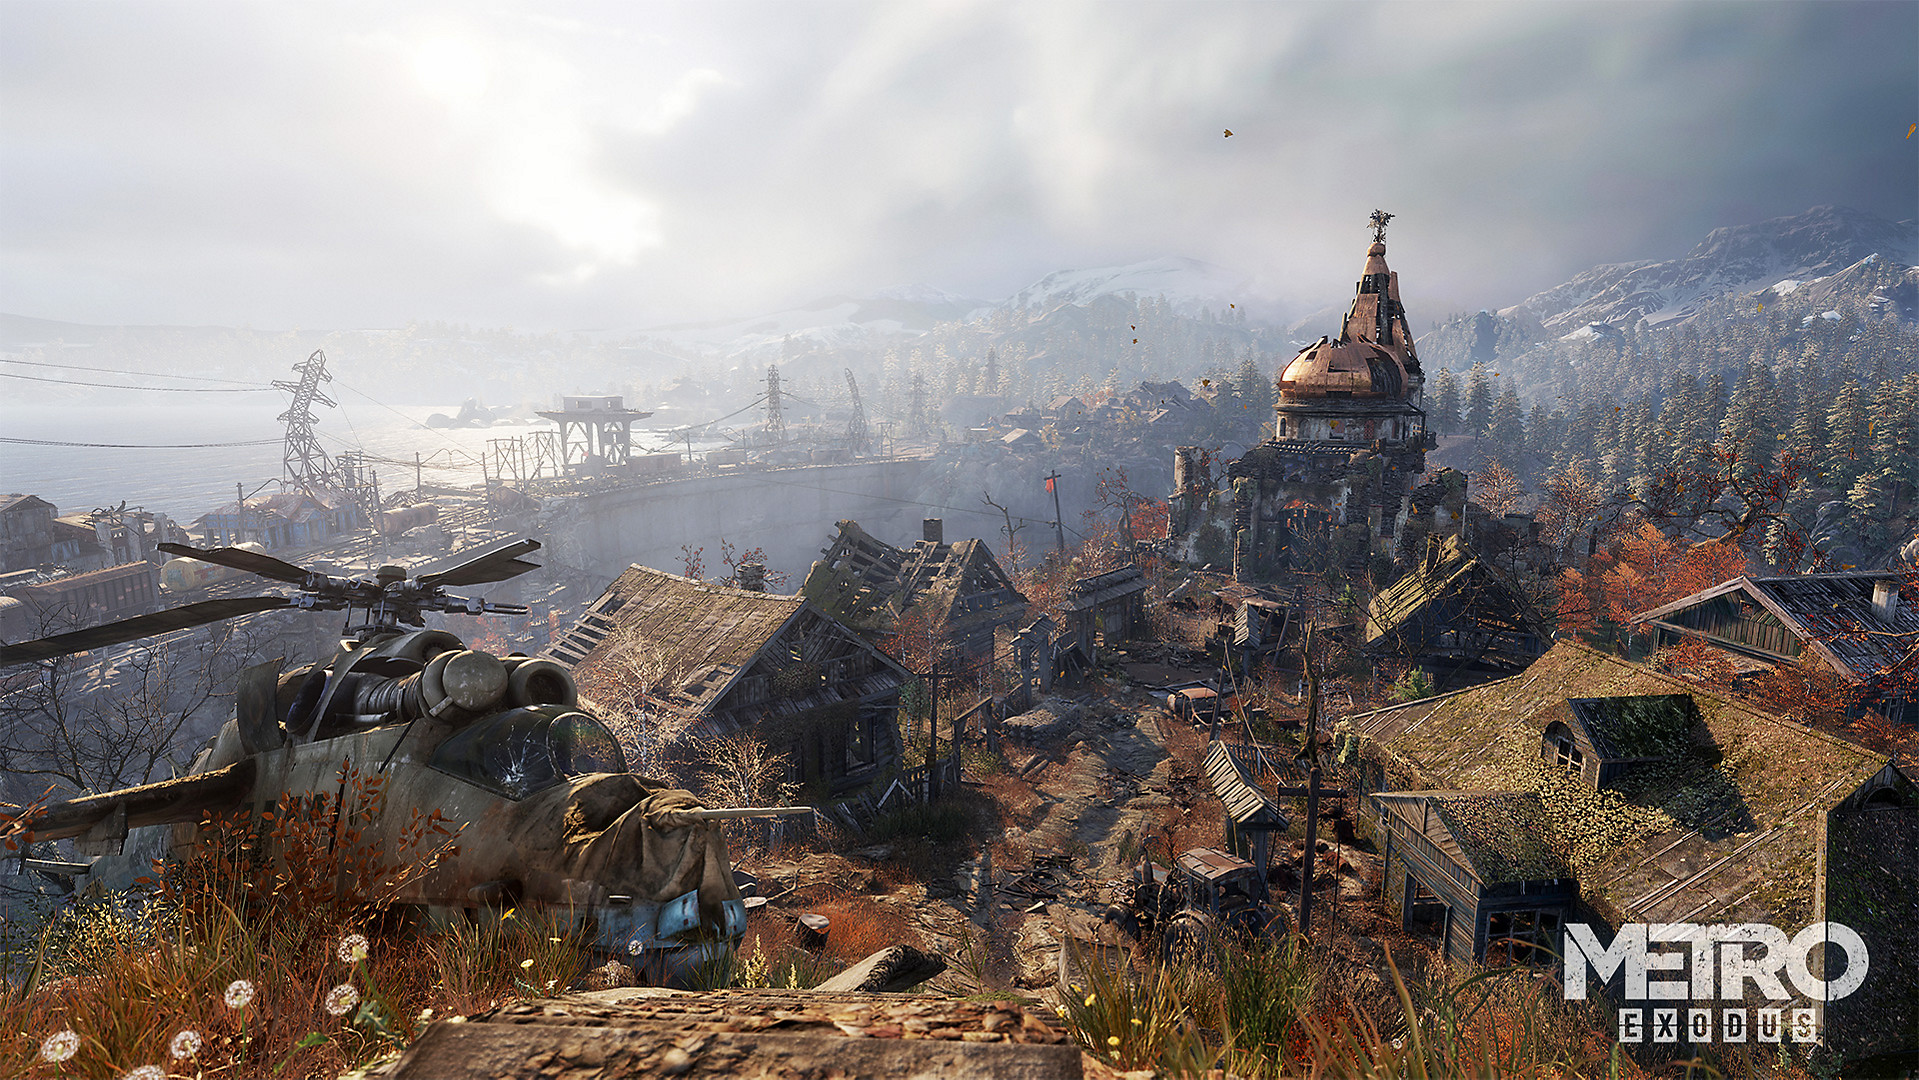 metro-exodus-screen-05-ps4-us-25jan18?$n